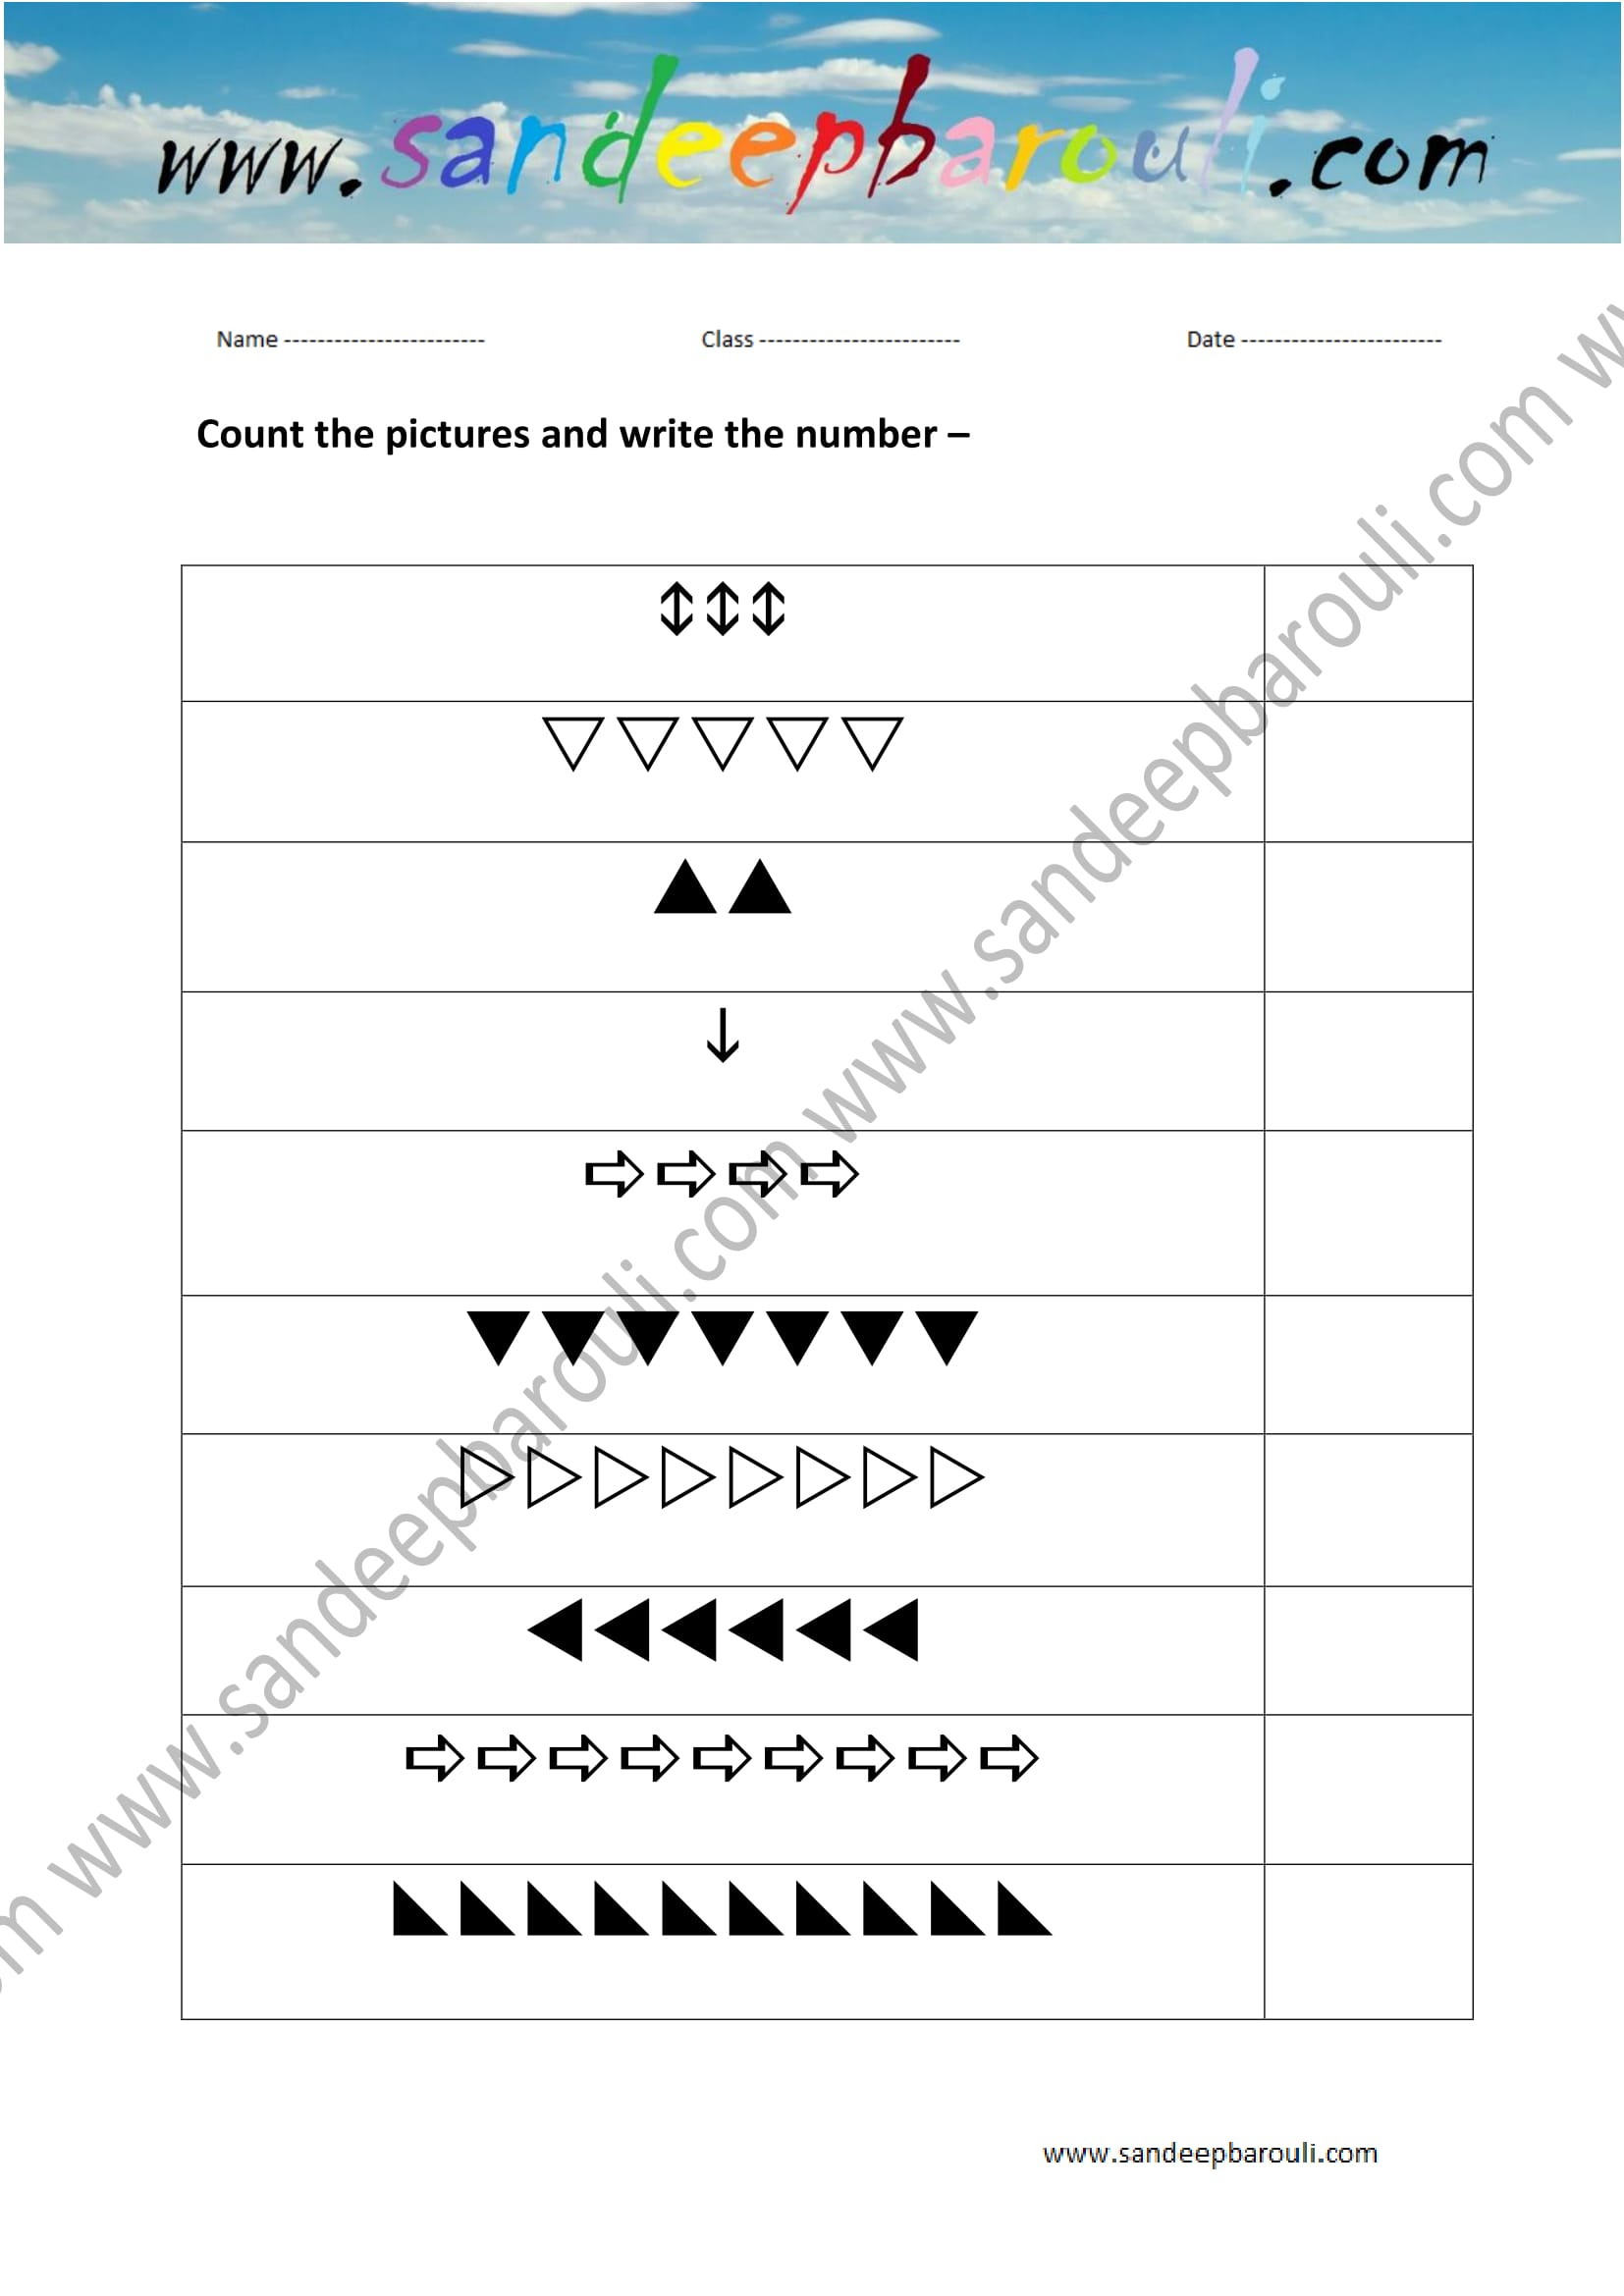 Count The Picture And Write The Number Worksheet 10